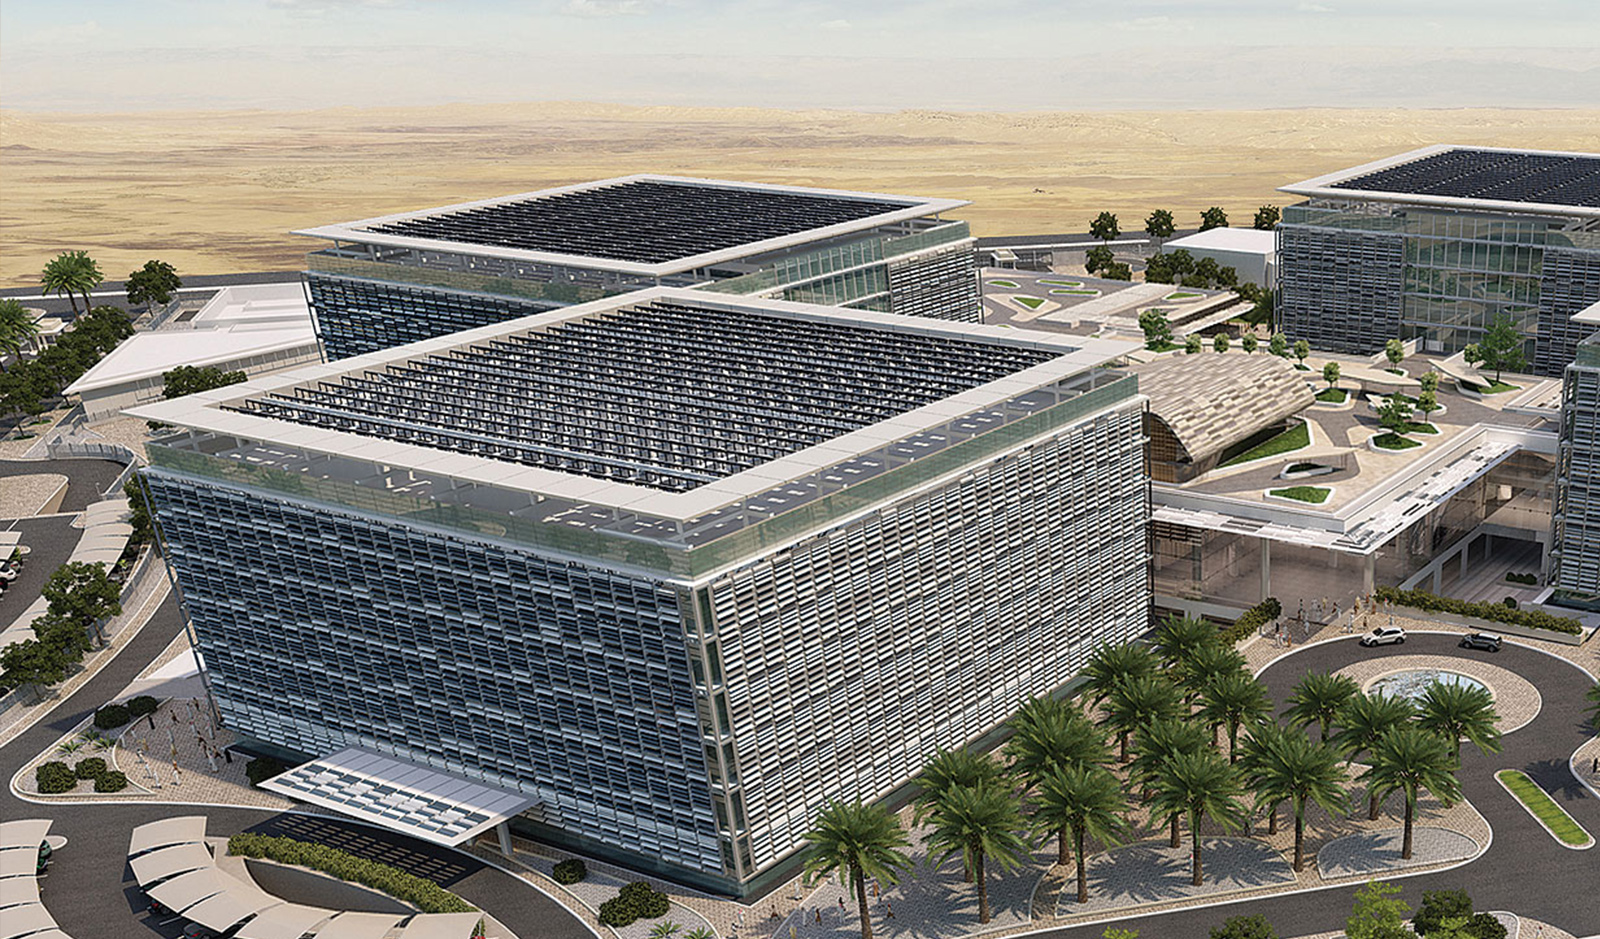 Saudi Electric Company – HQ